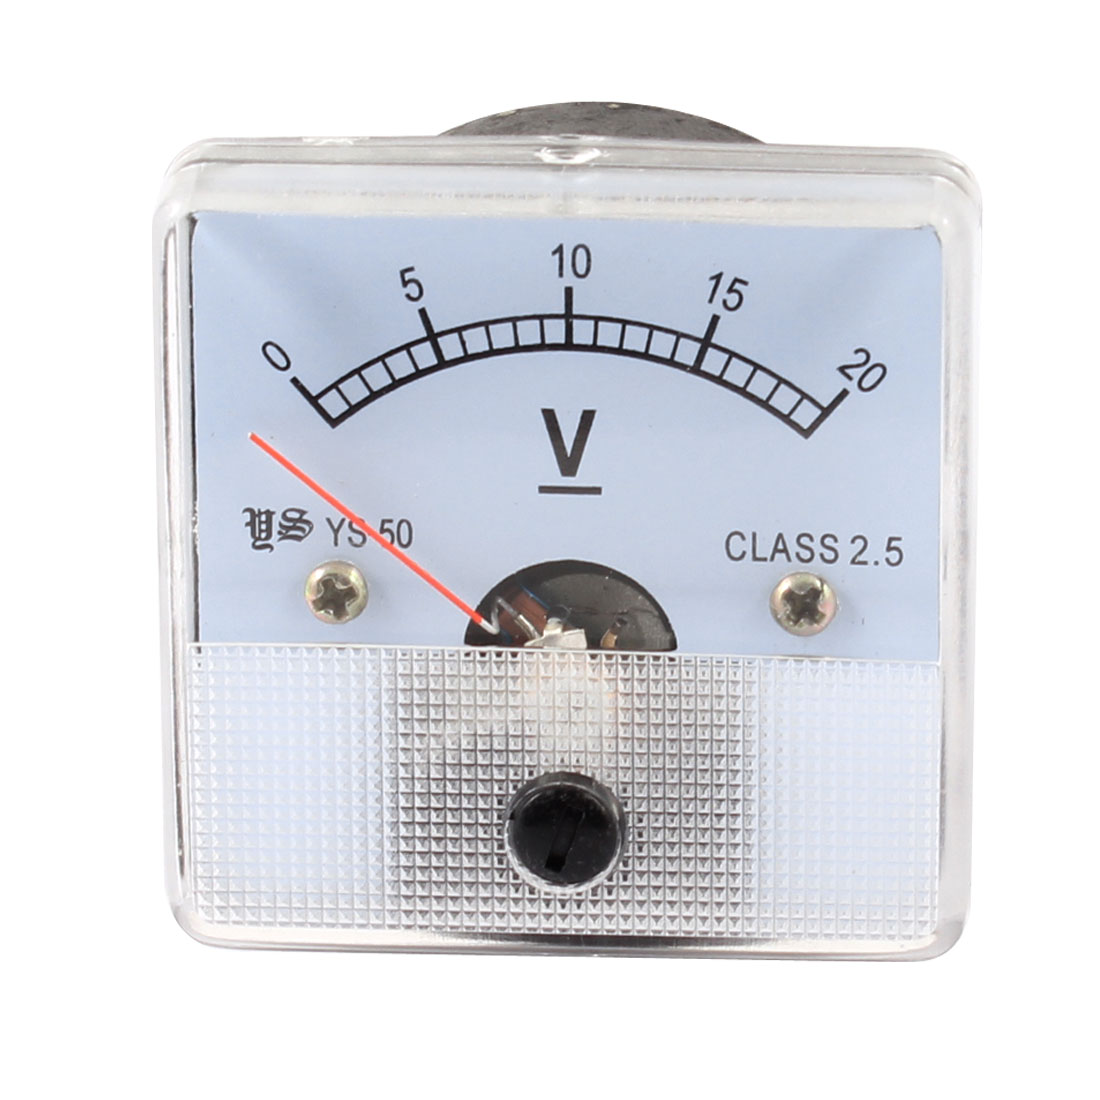 DC 0-20V Class 2.5 Fine Tuning Square Shaped Analog Voltage Meter Voltmeter